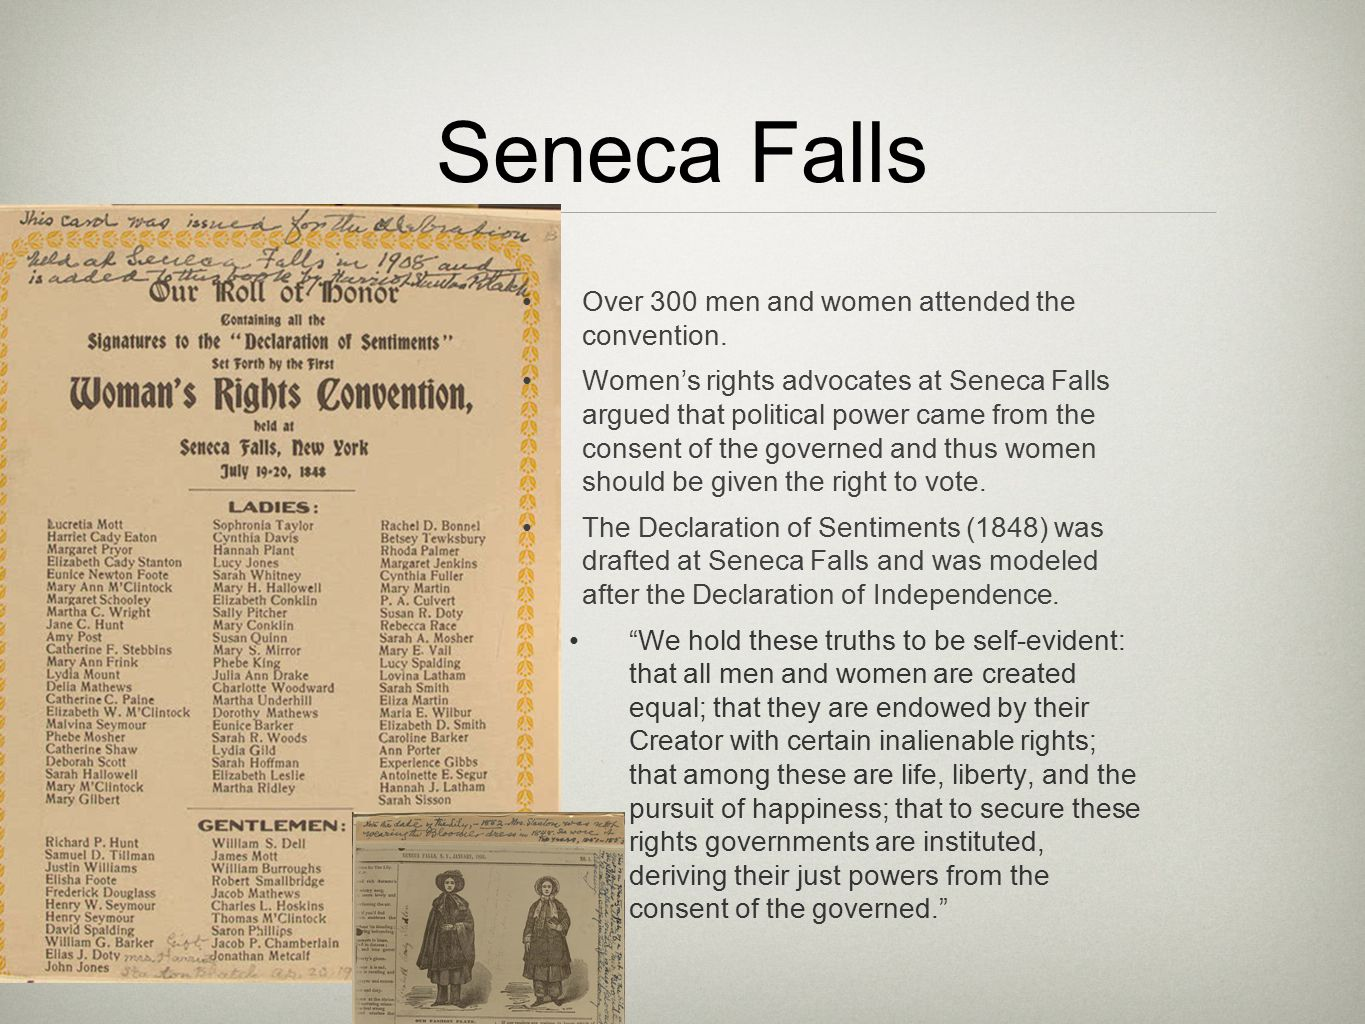 Seneca Falls Over 300 men and women attended the convention.